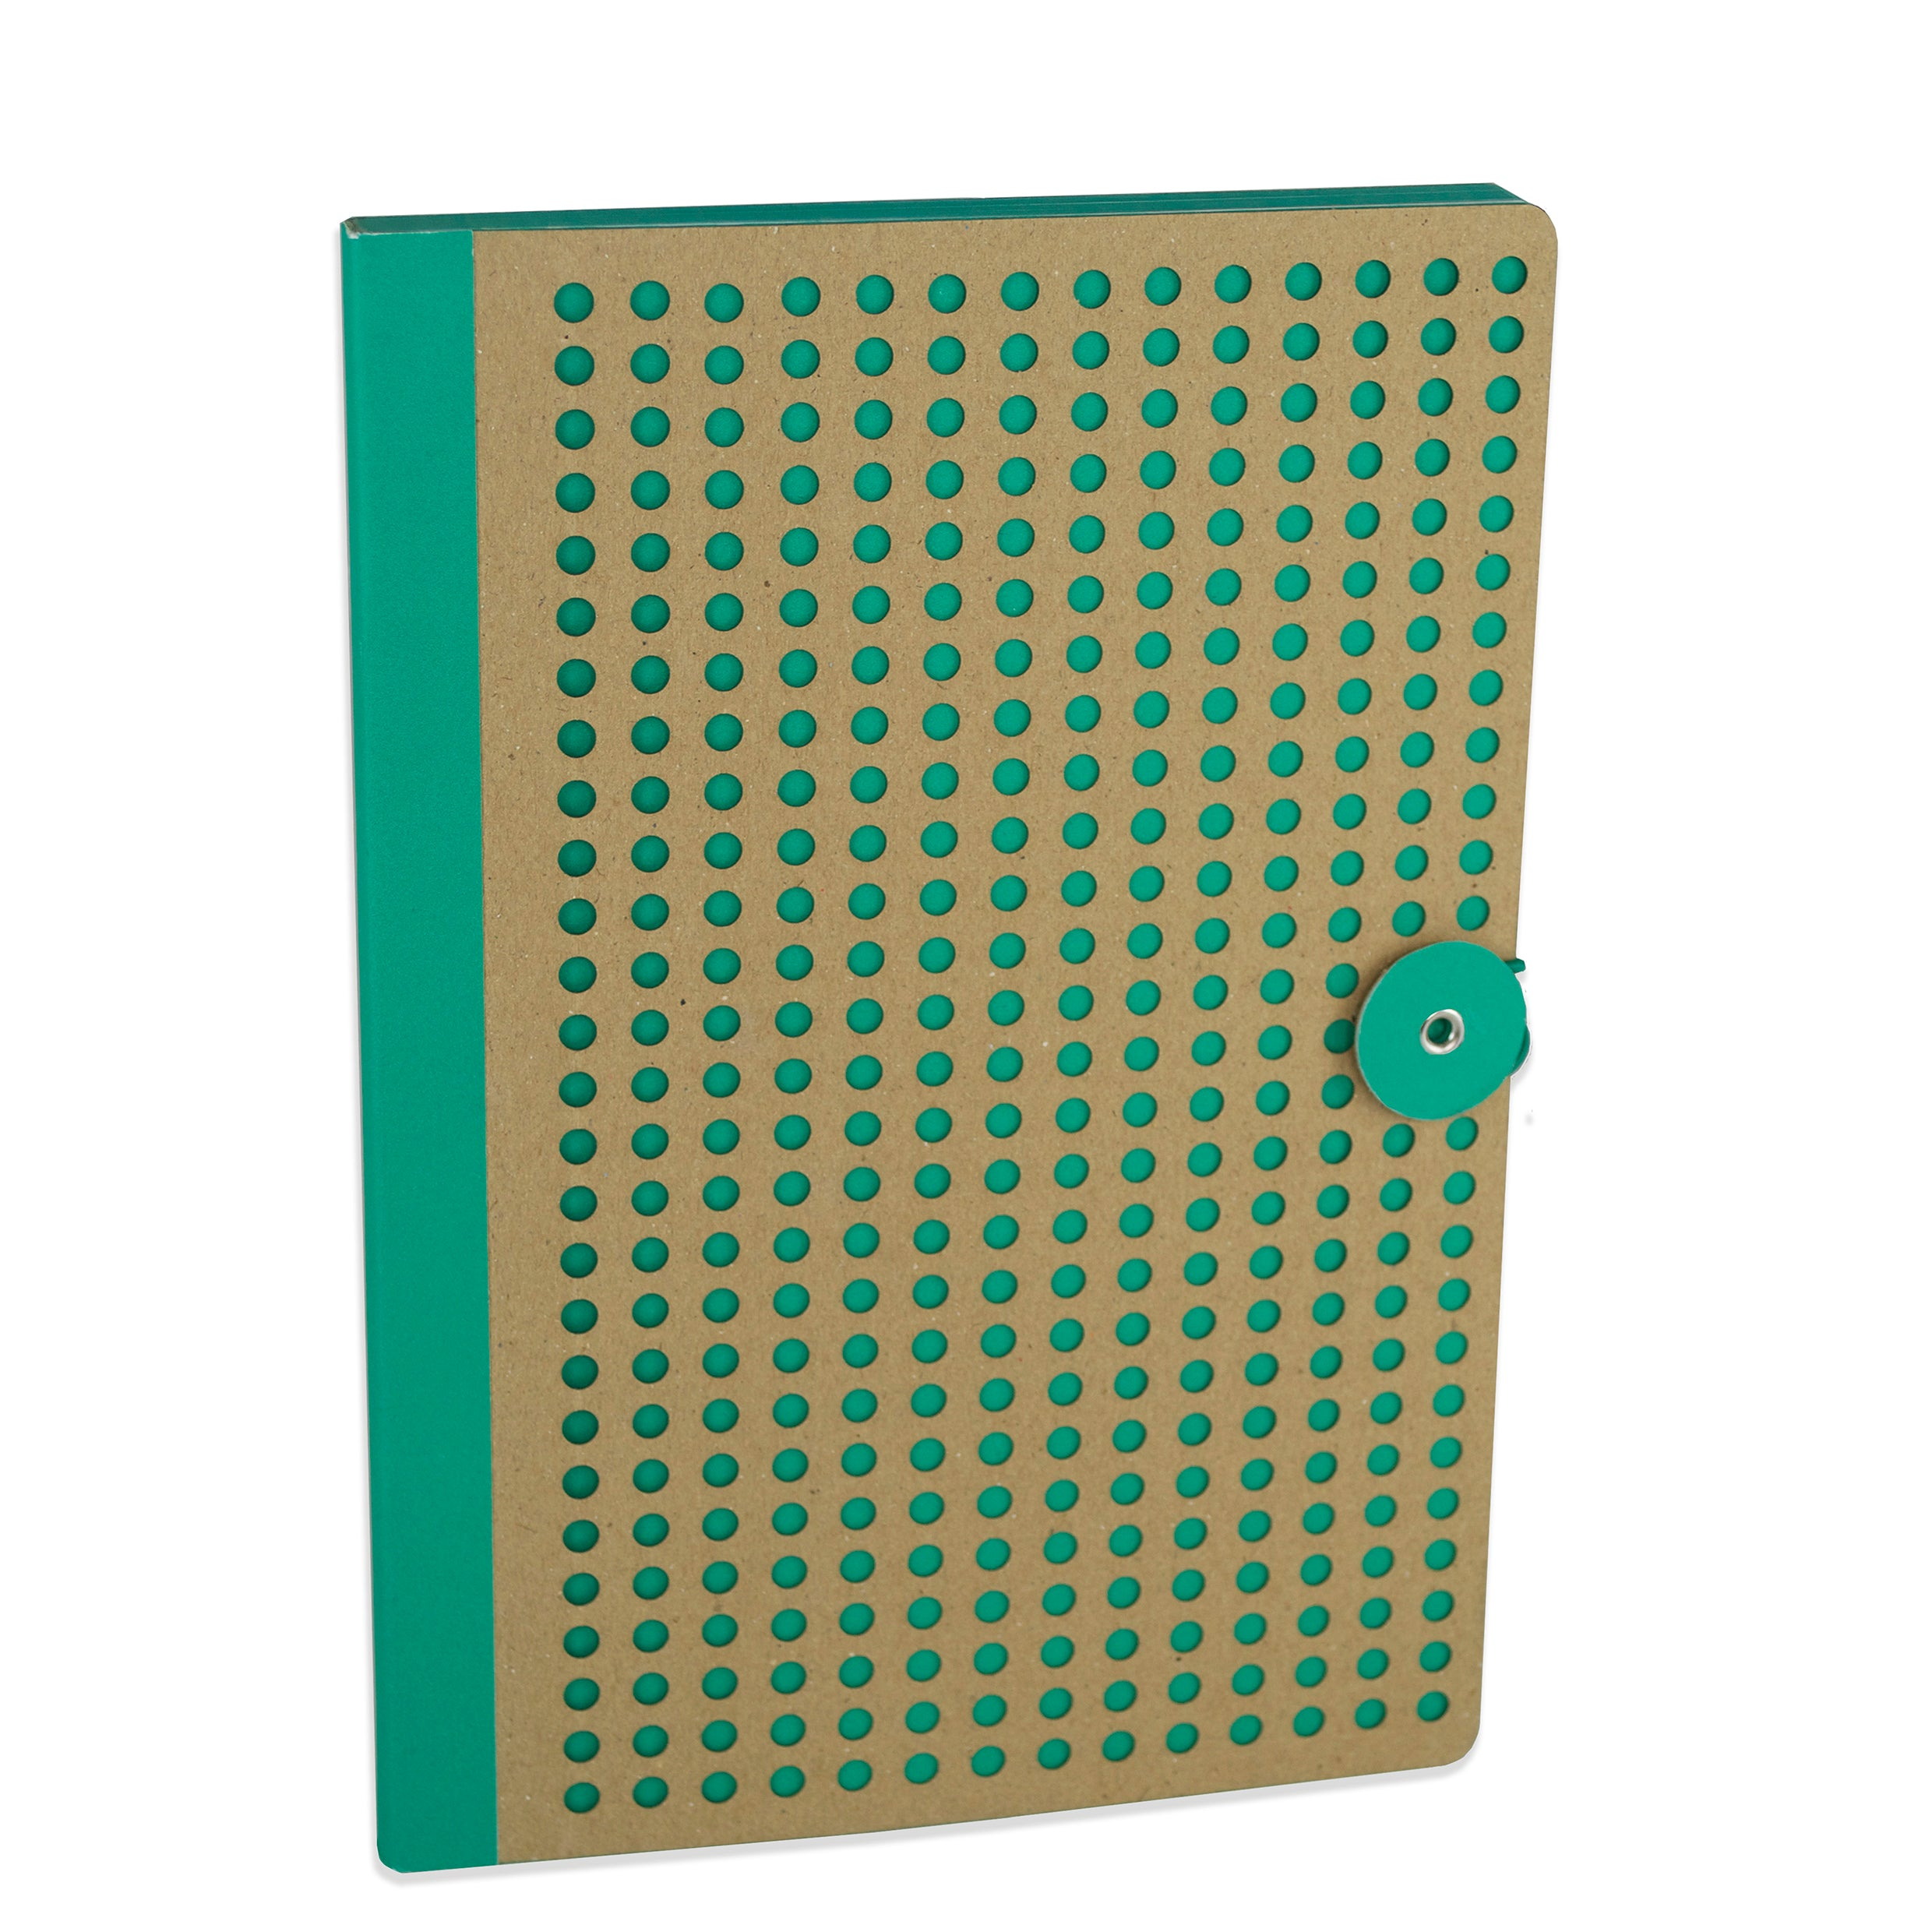 Green Neon Kraft Notebook, closed